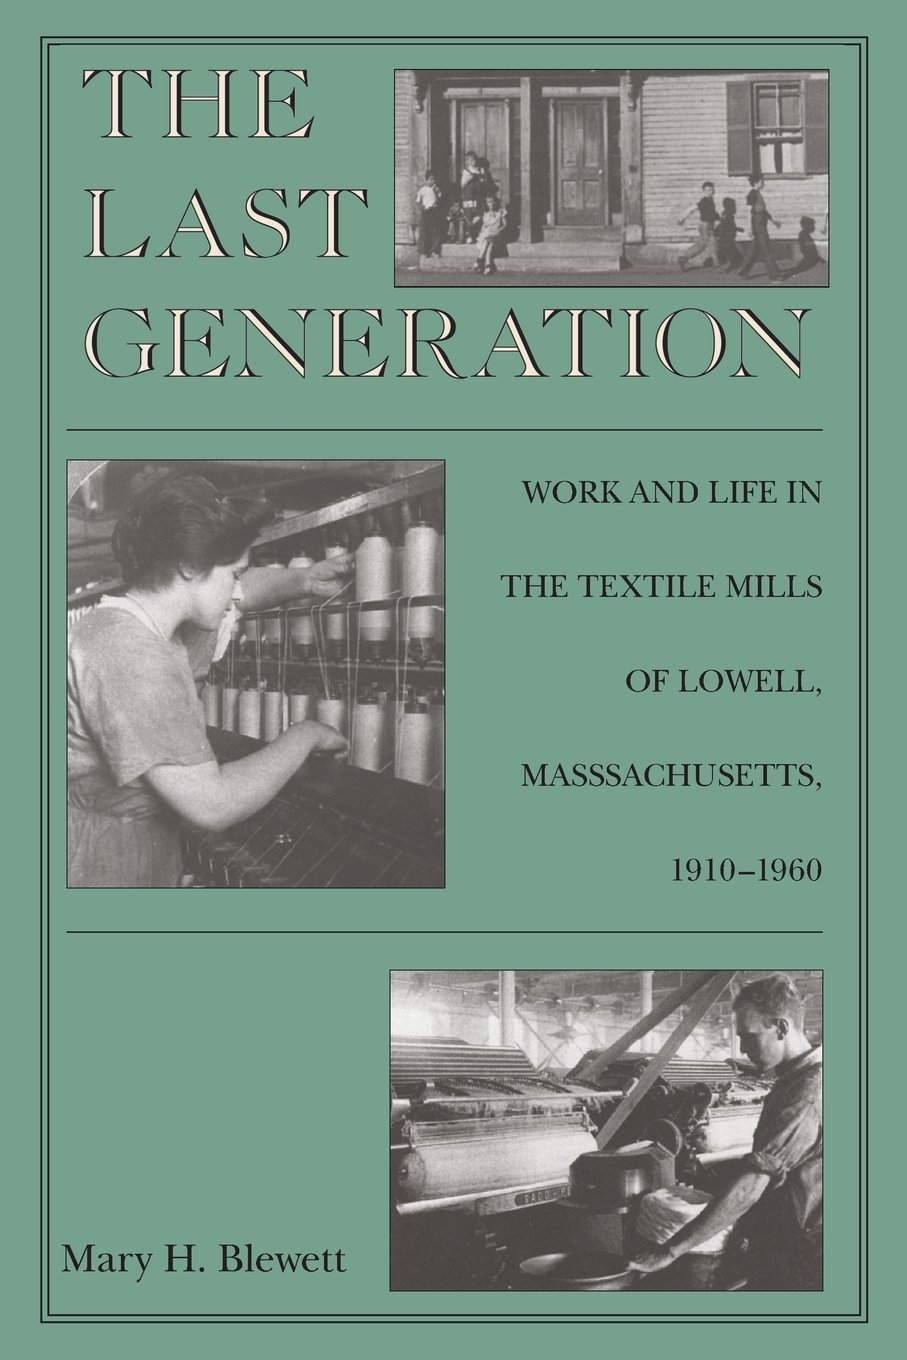 The Last Generation: Work and Life in the Textile Mills of Lowell, Massachusetts, 1910-1960 (Political Thought)